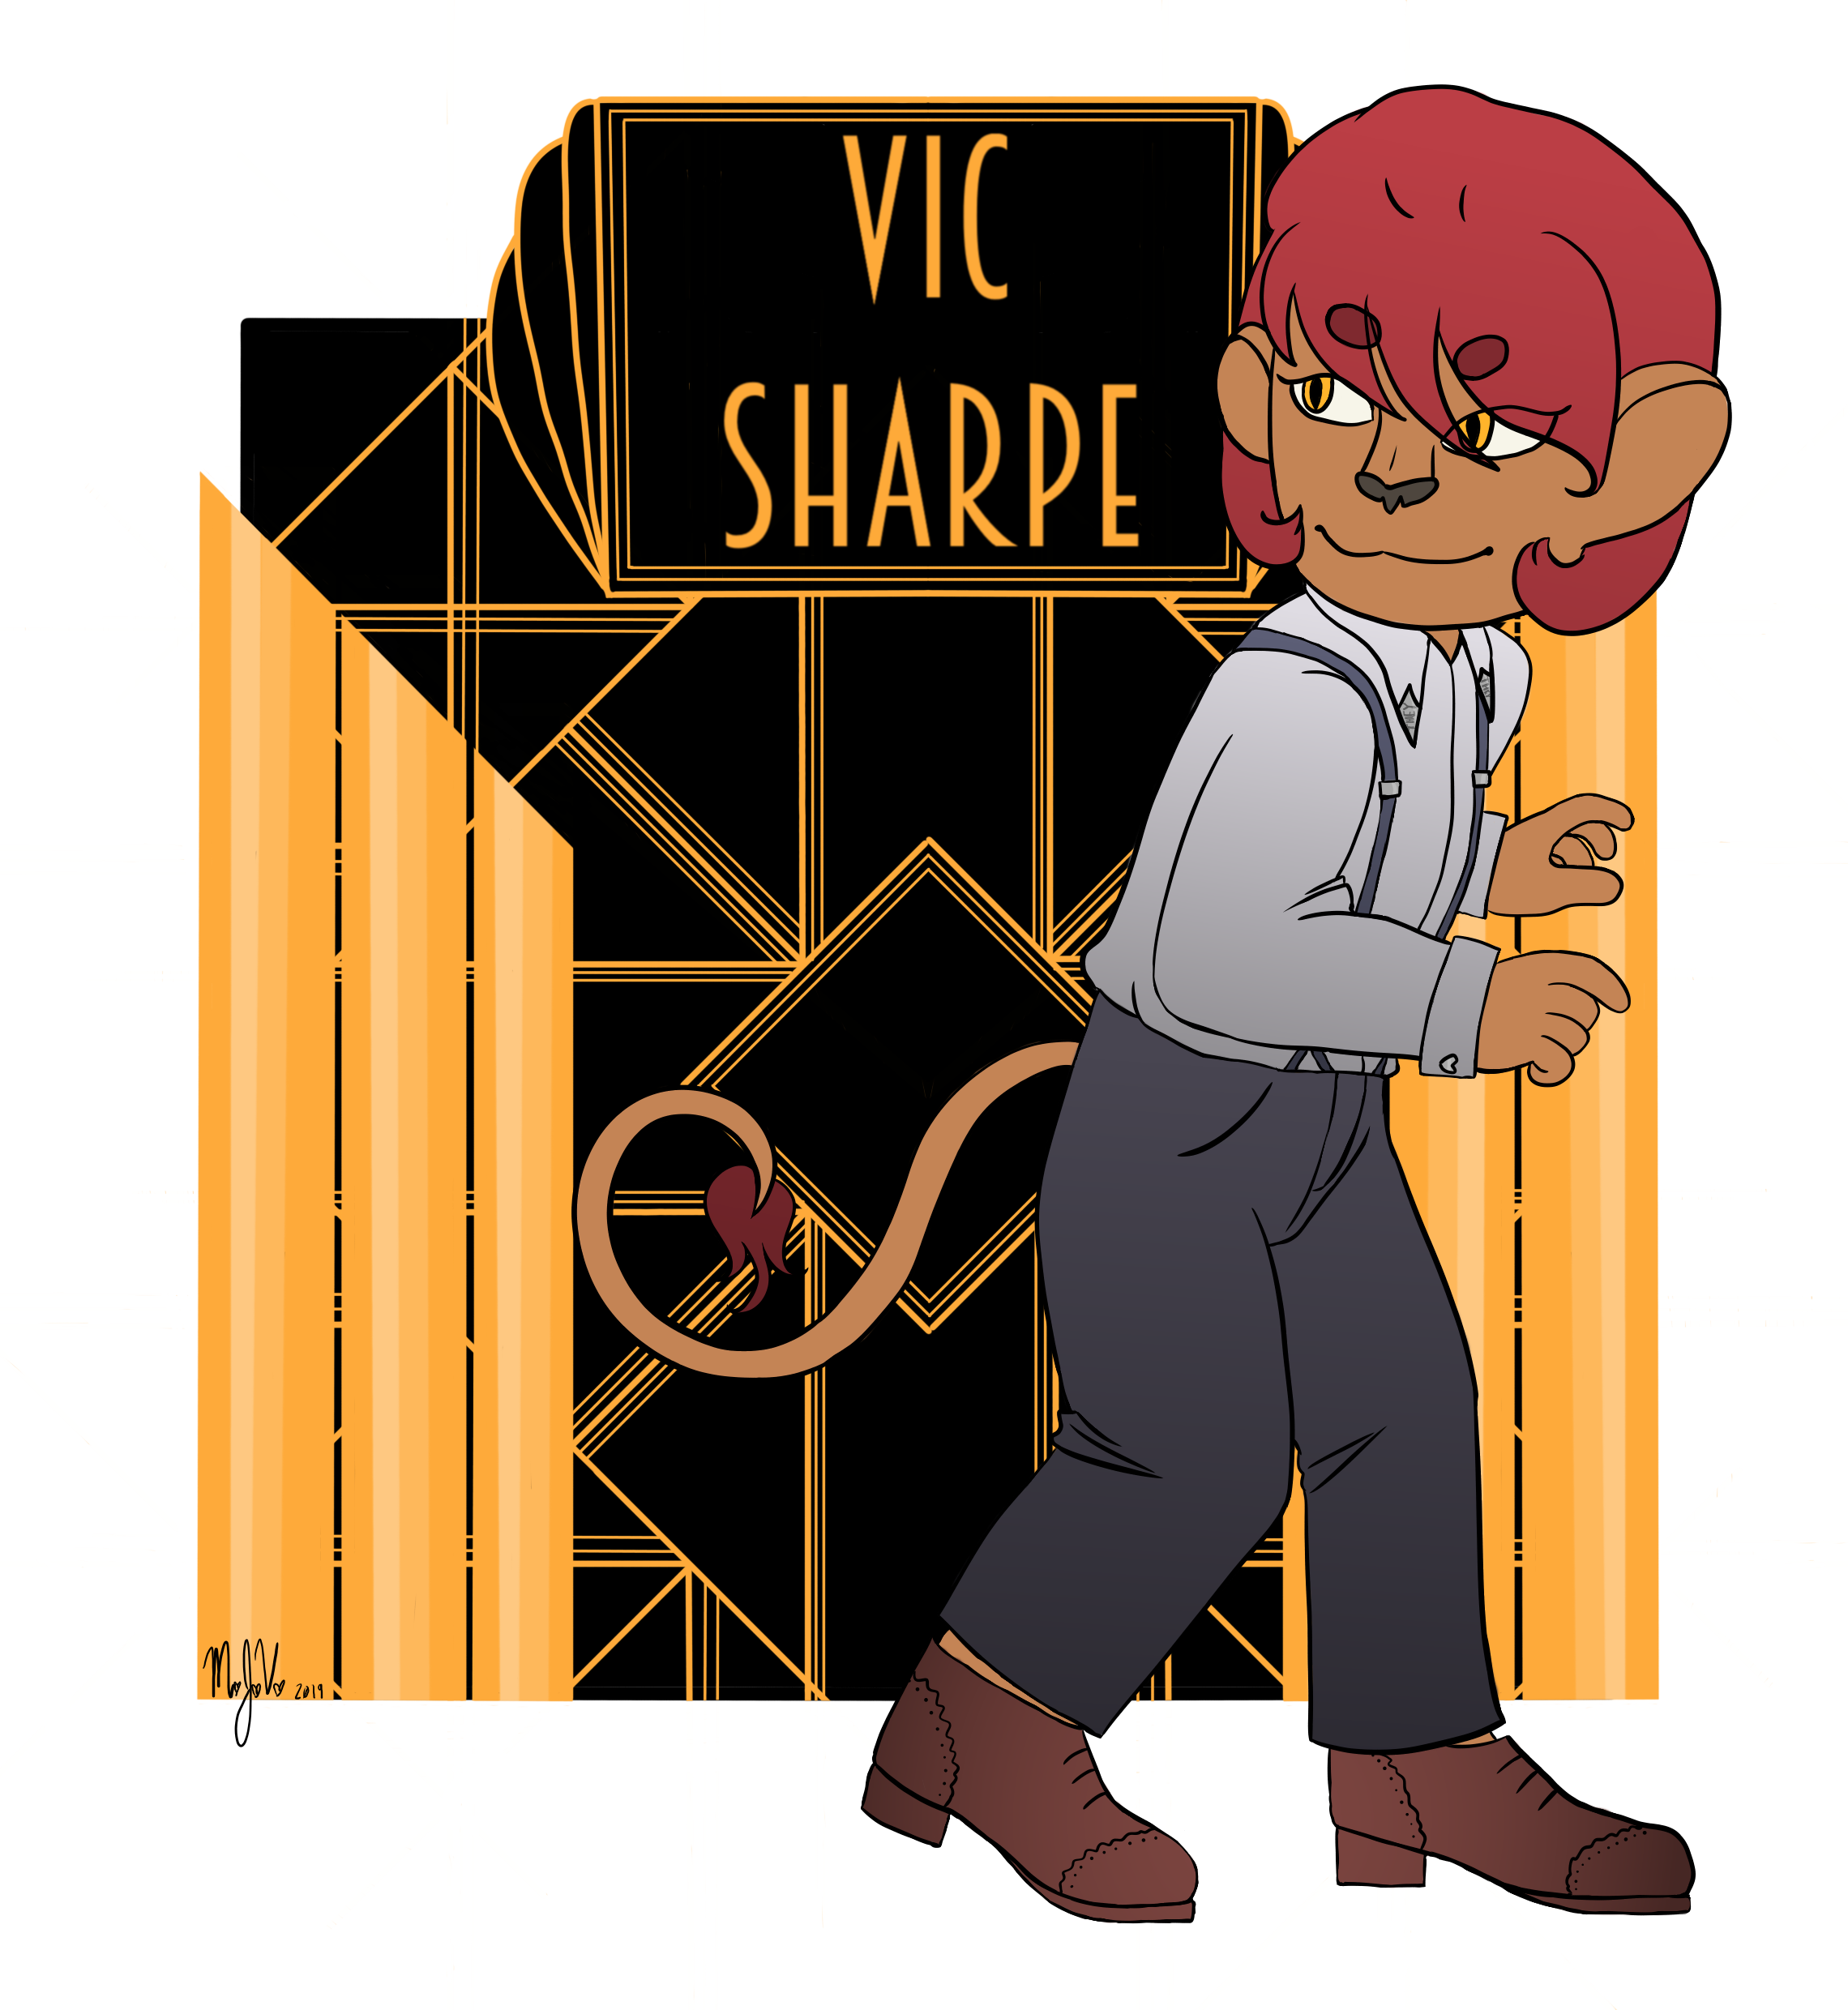 Vic Sharpe Full Color